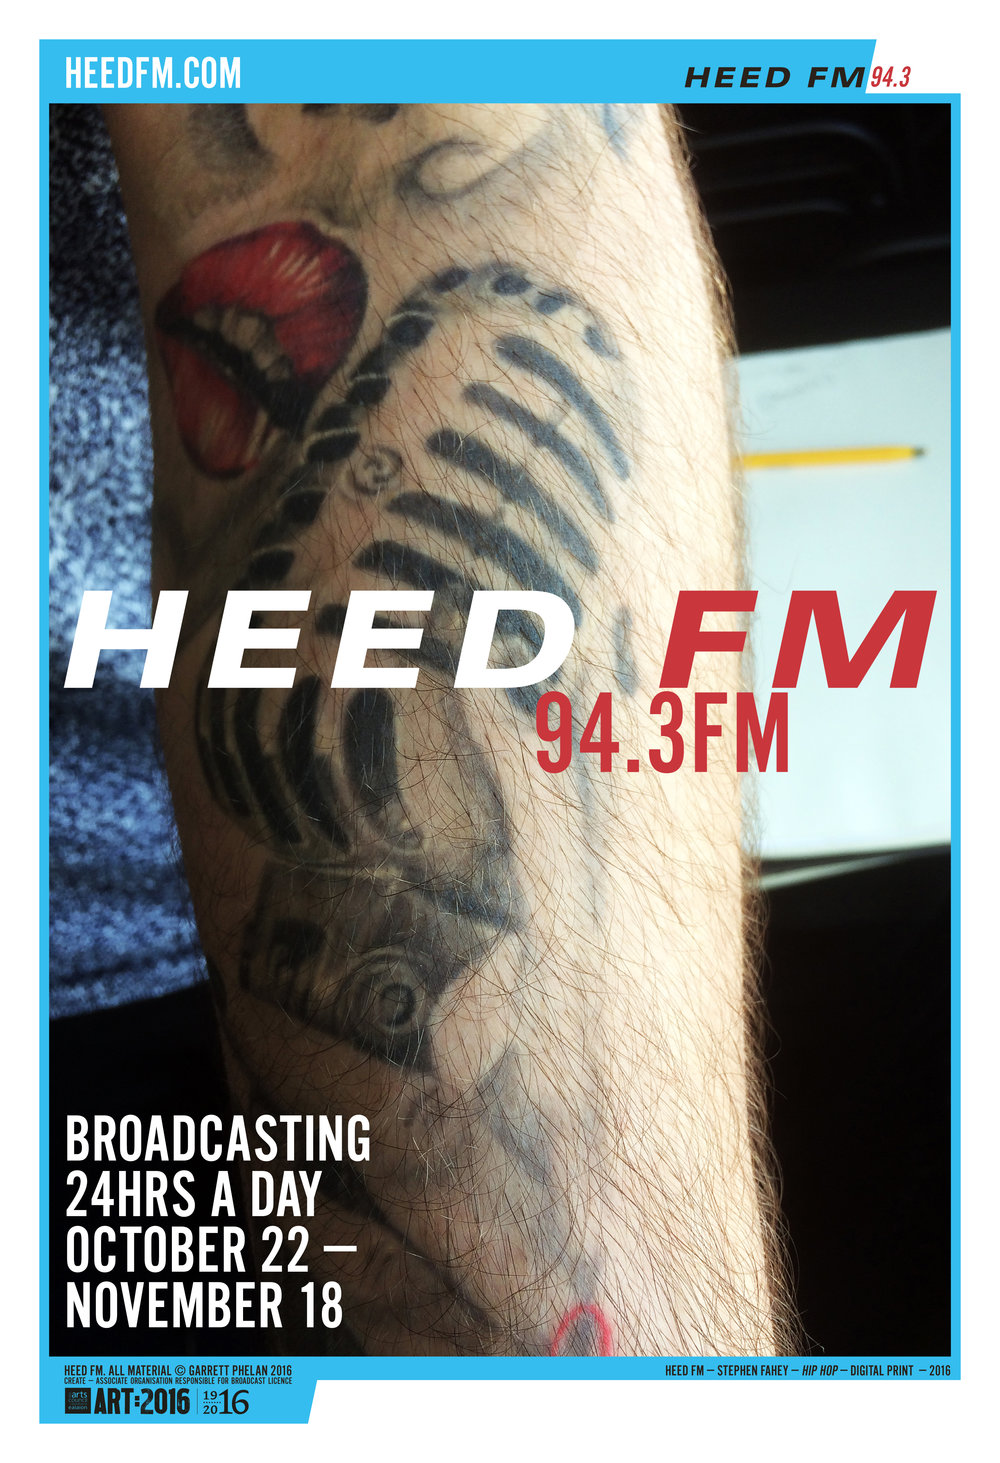 heed fm 4 sheets artwork-9.jpg